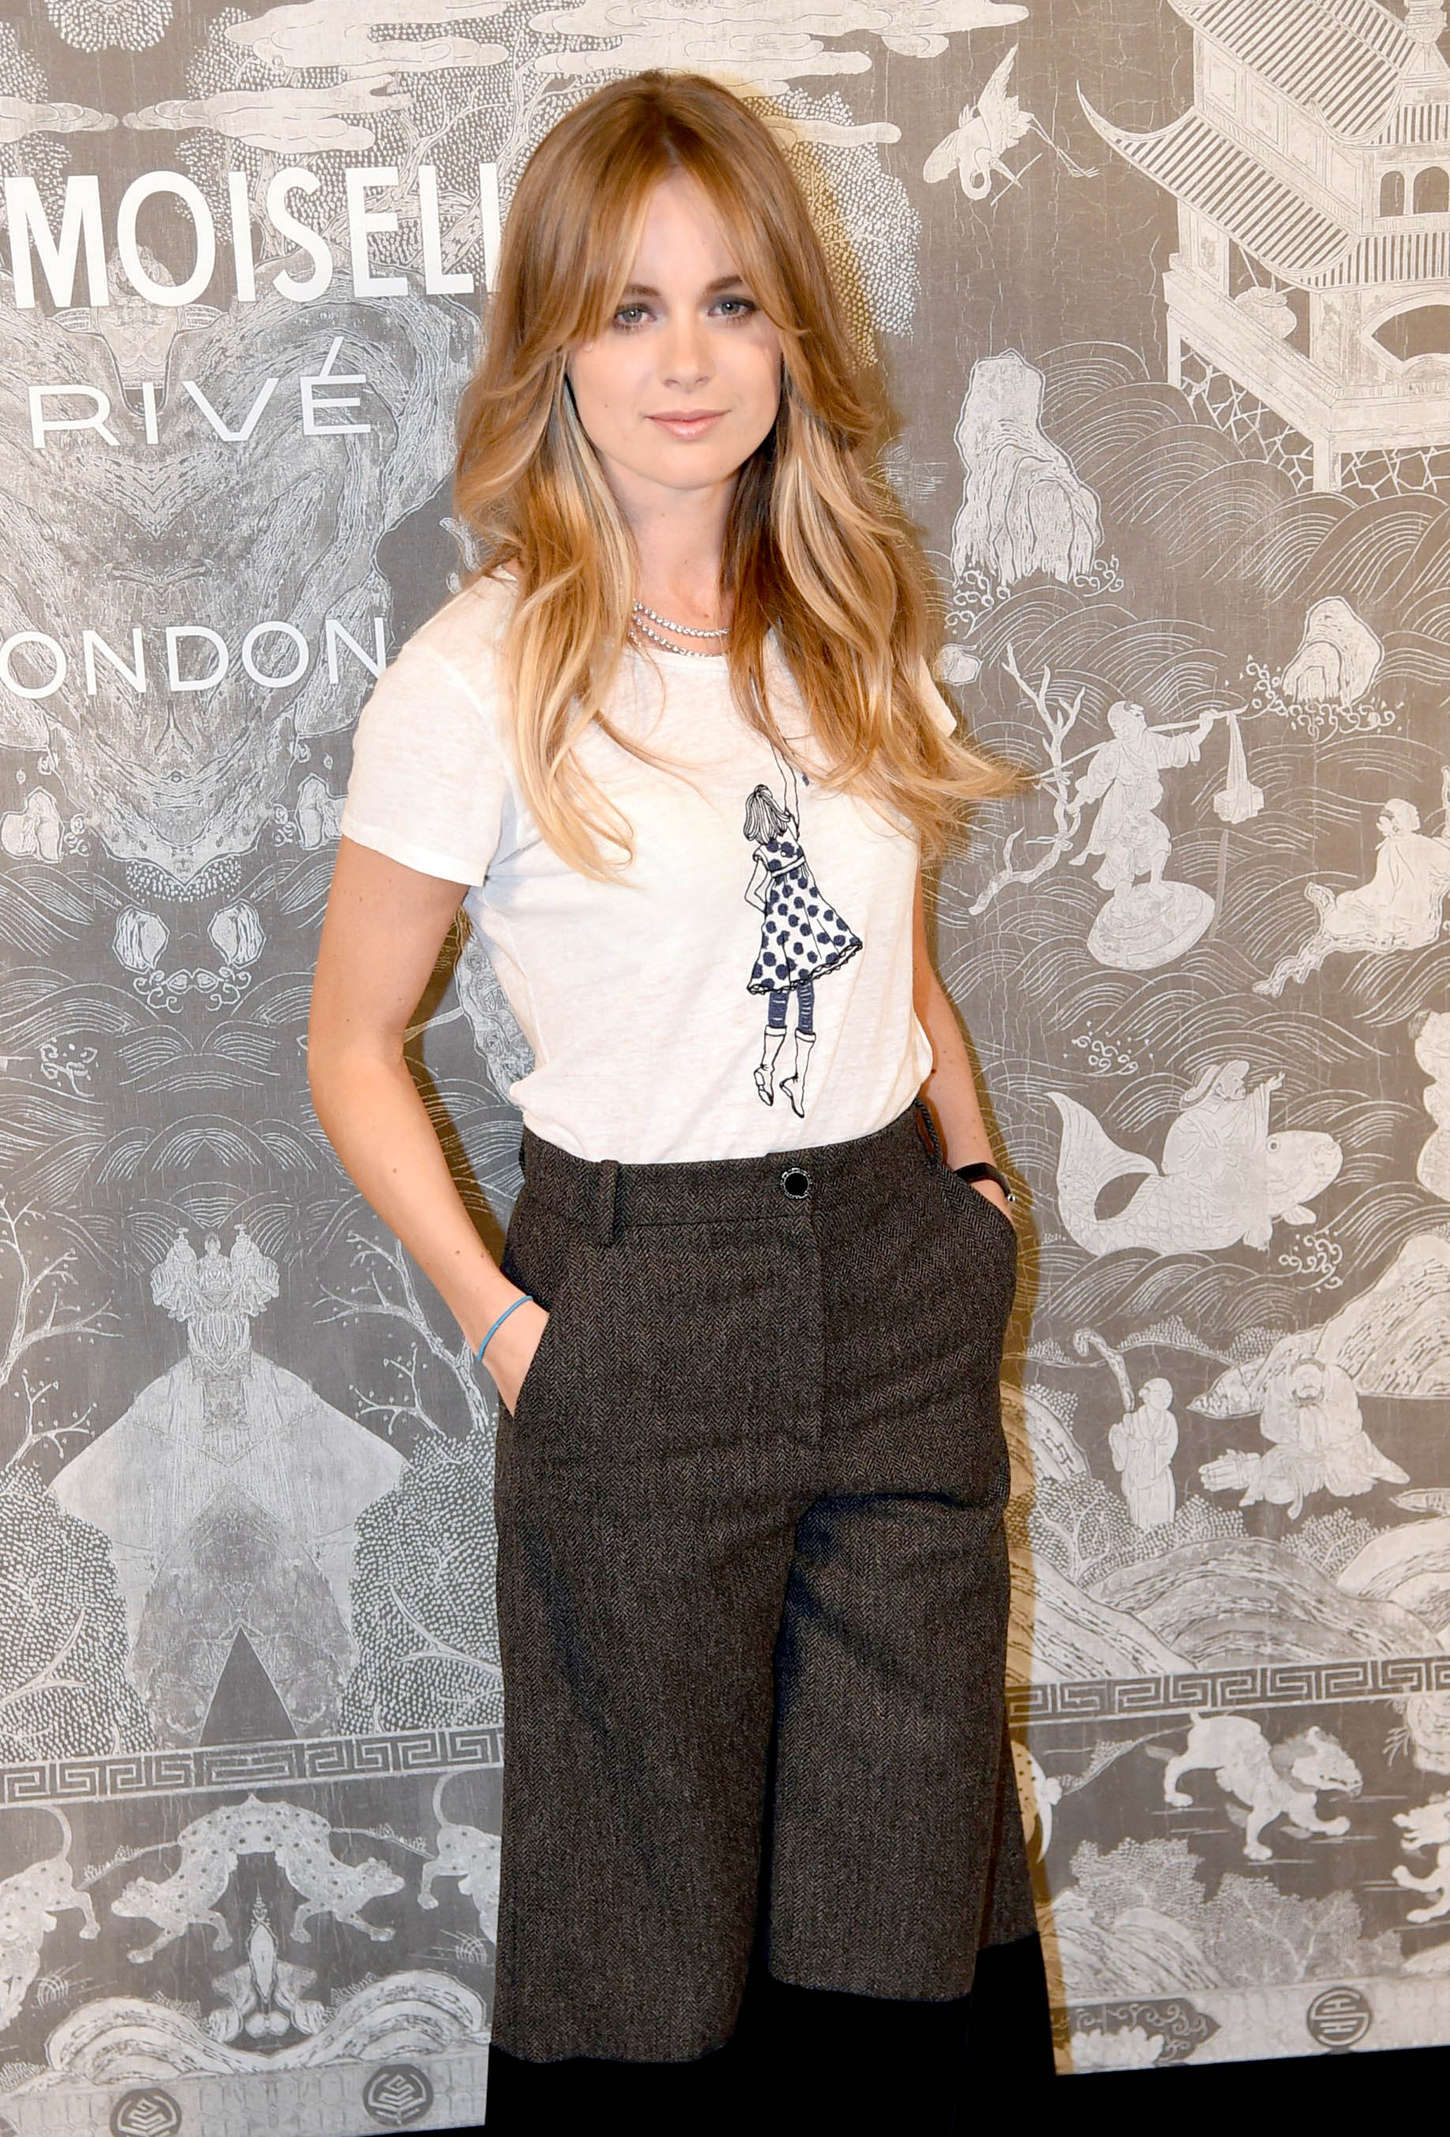 Cressida Bonas Chanel Exhibition Party in London